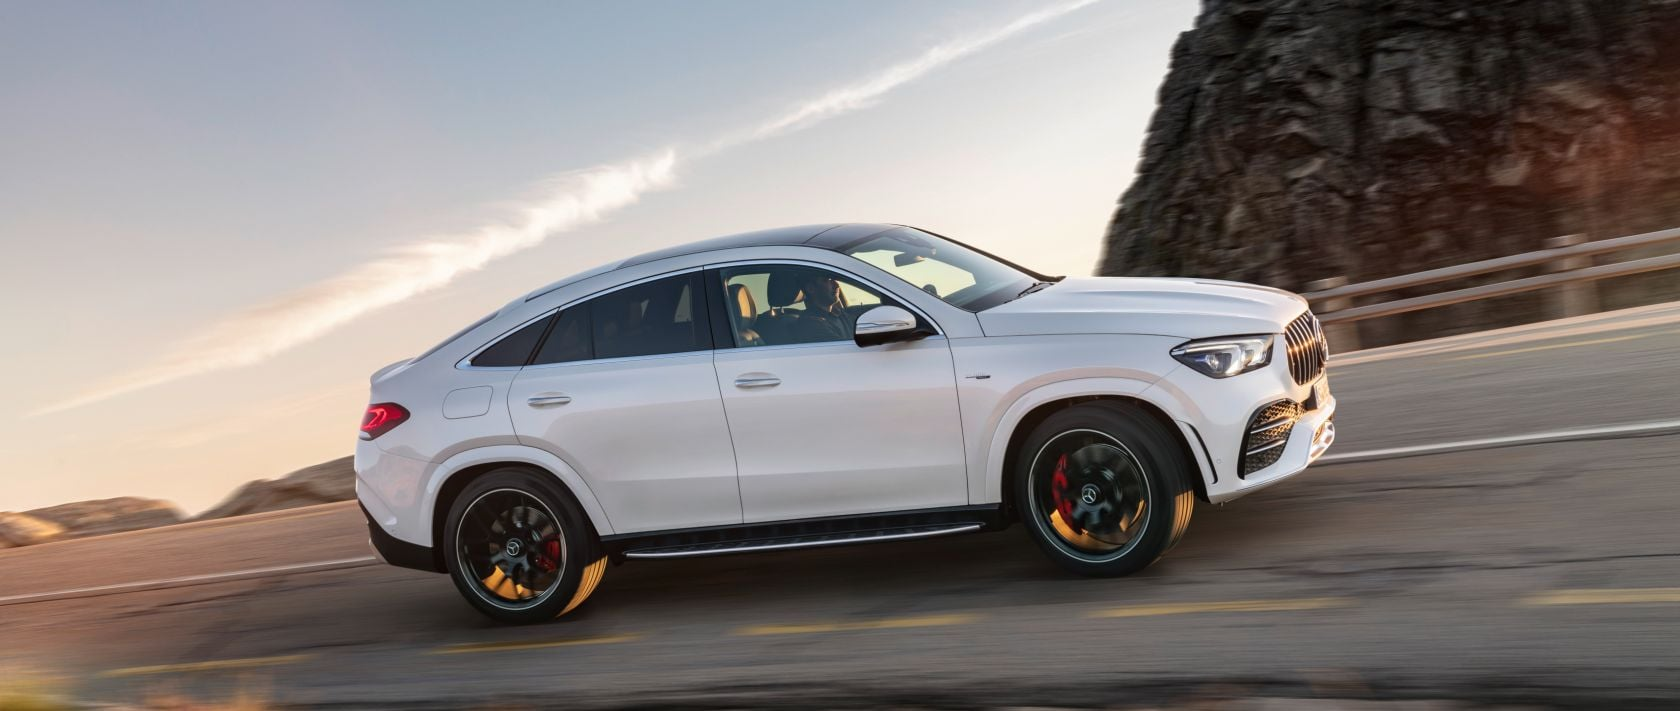 The new 2020 Mercedes-AMG GLE 53 4MATIC+ Coupé (C 167) in designo diamond white bright on a country road.